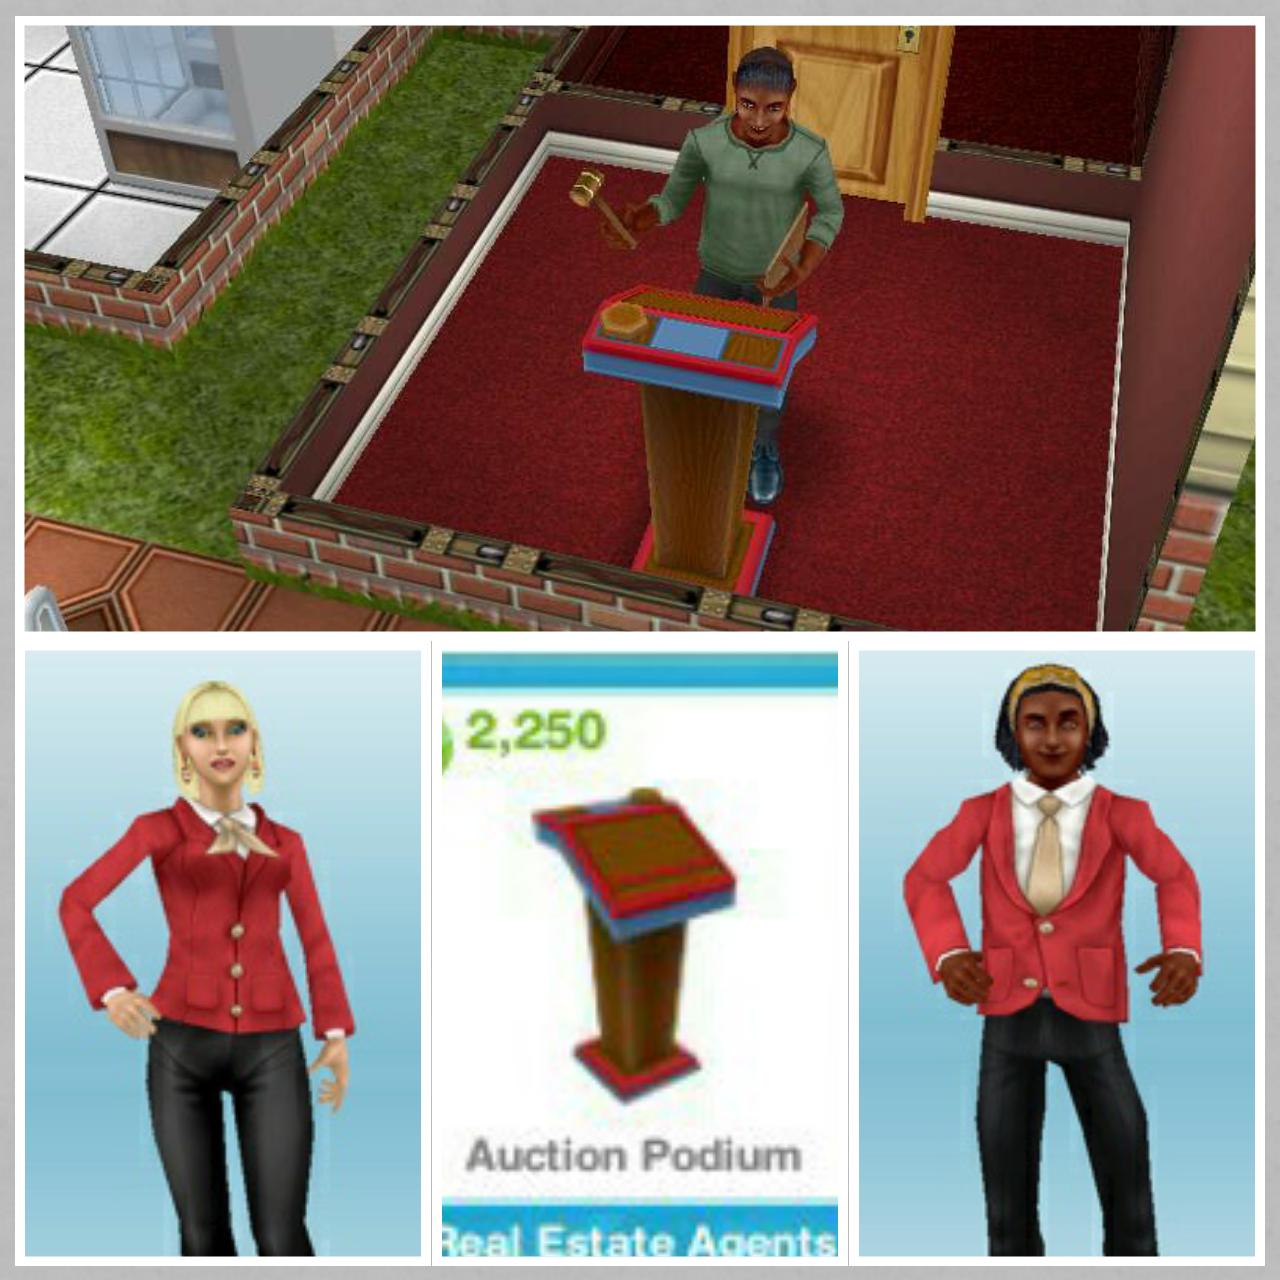 sims freeplay neighbors auction podium